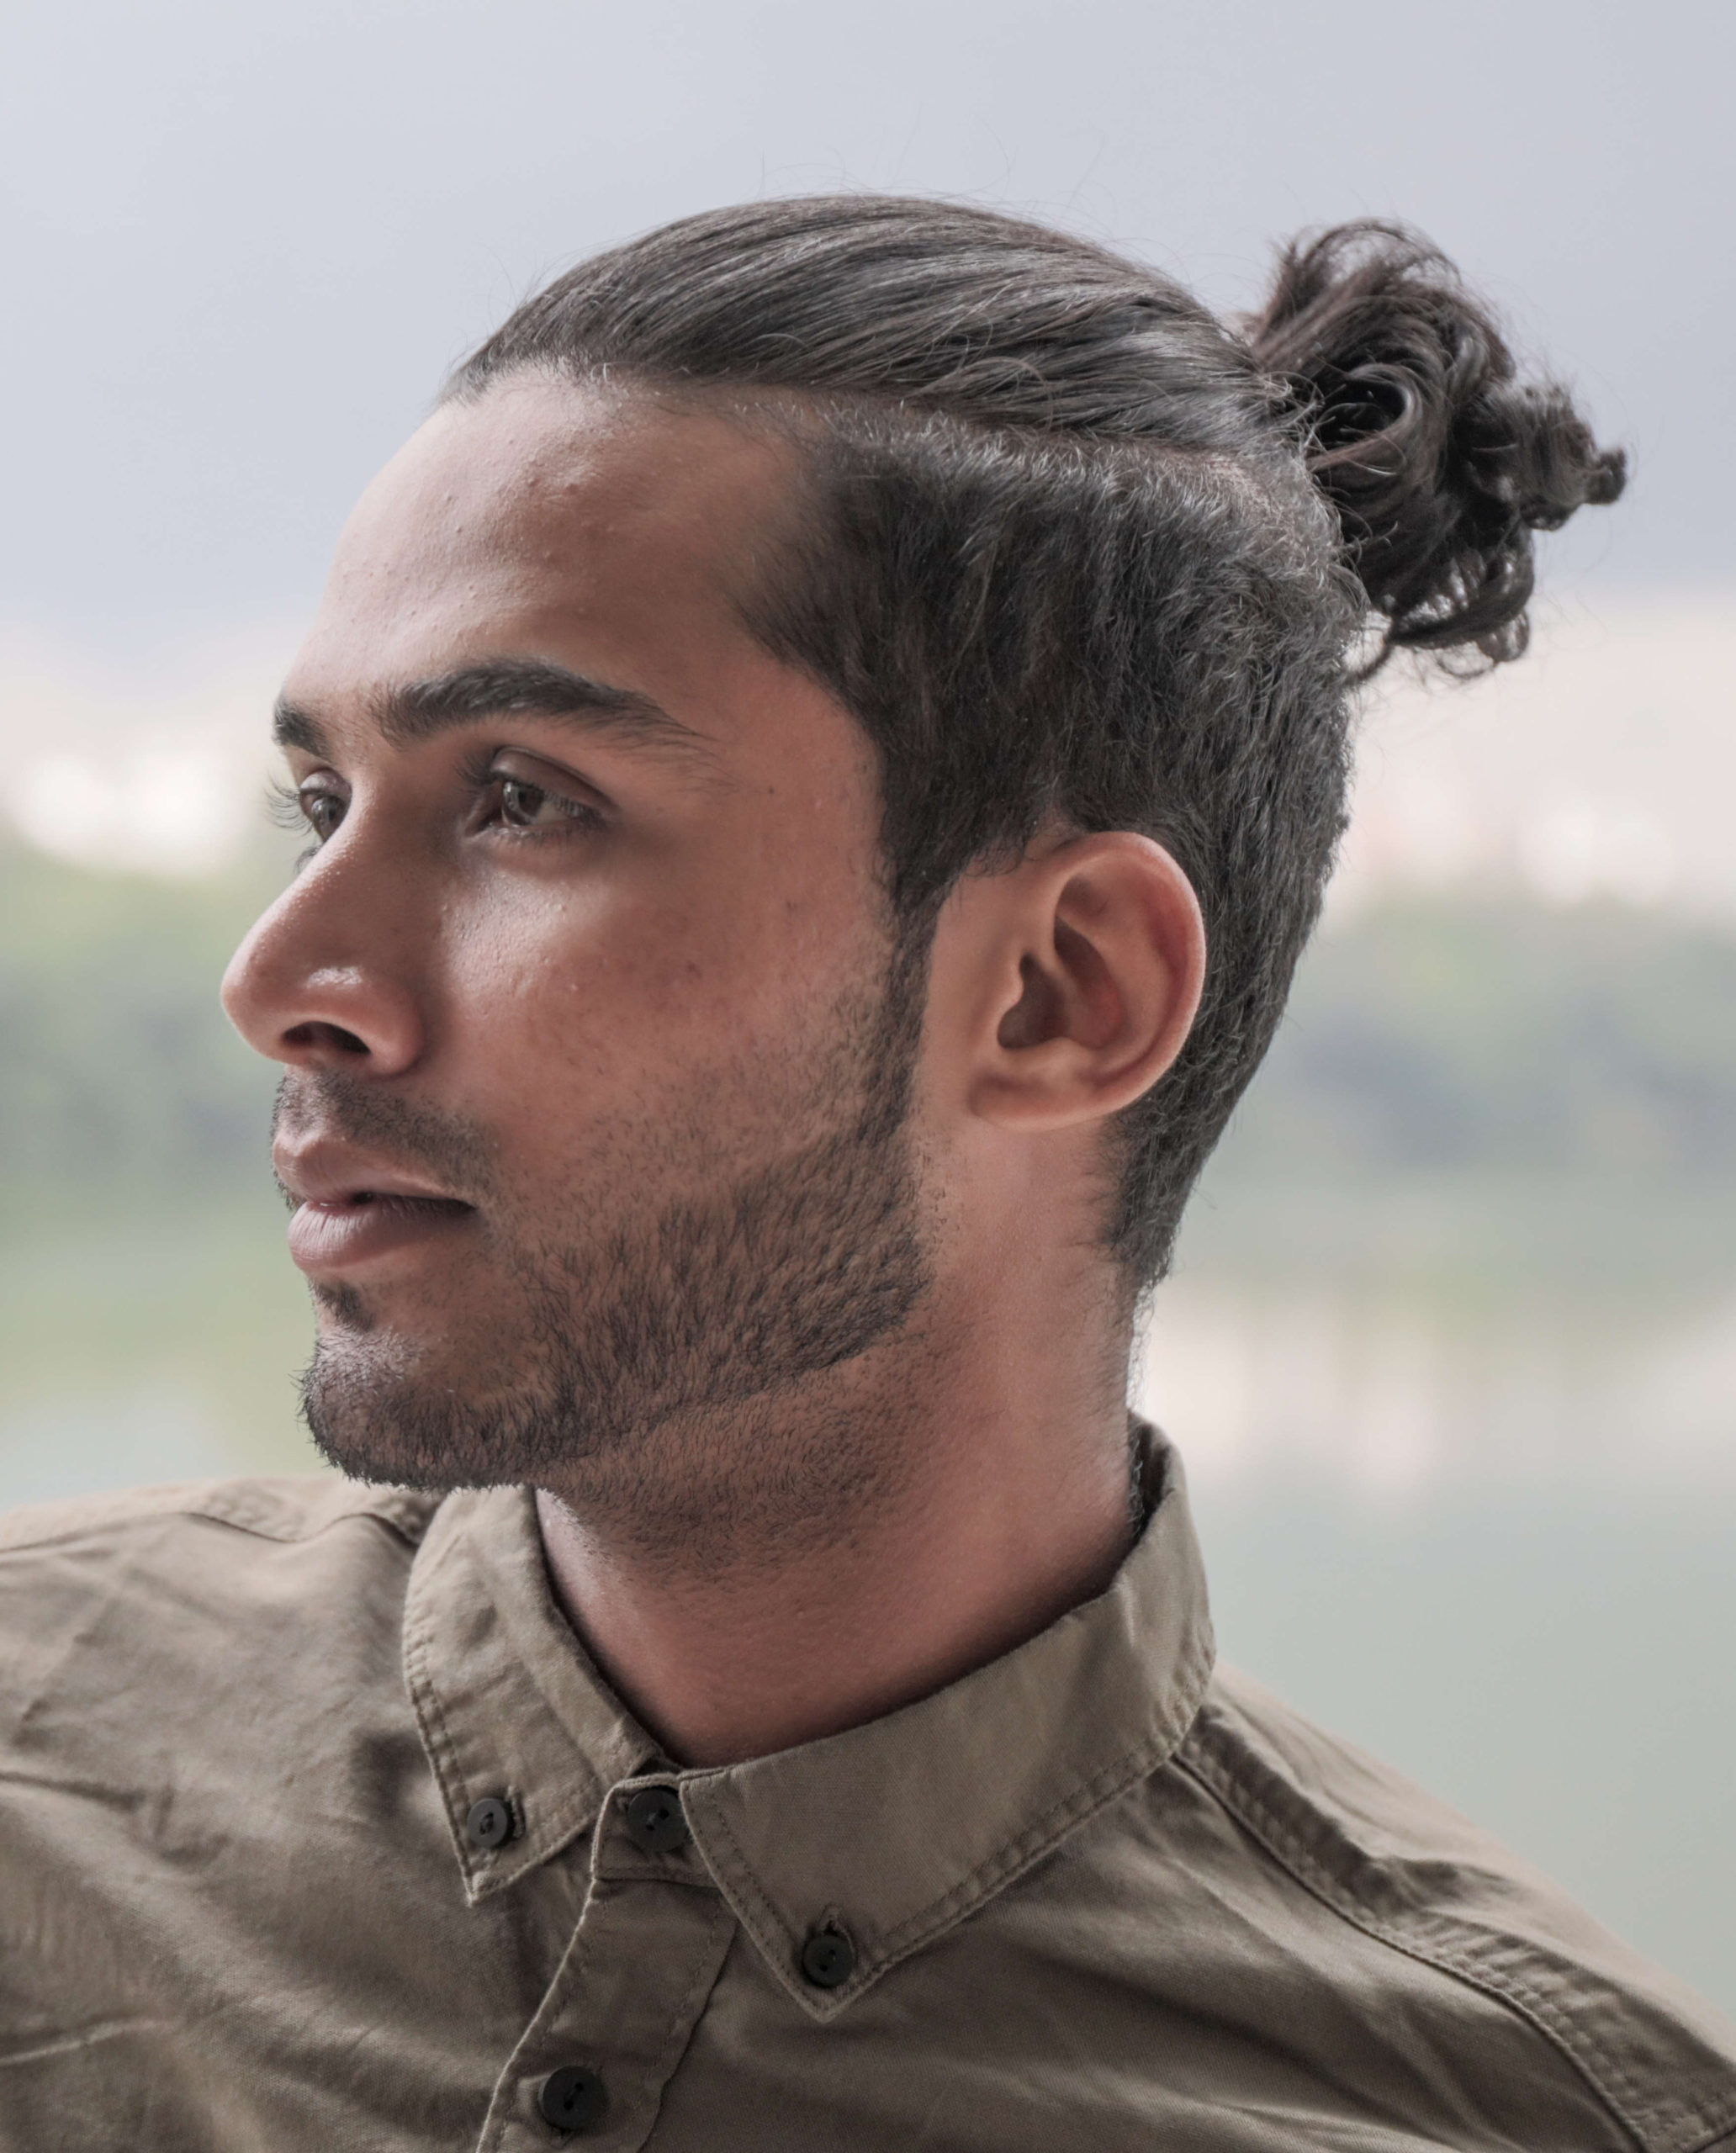 Modern Design Ideas – How to Find the Right Man Bun Hairstyle